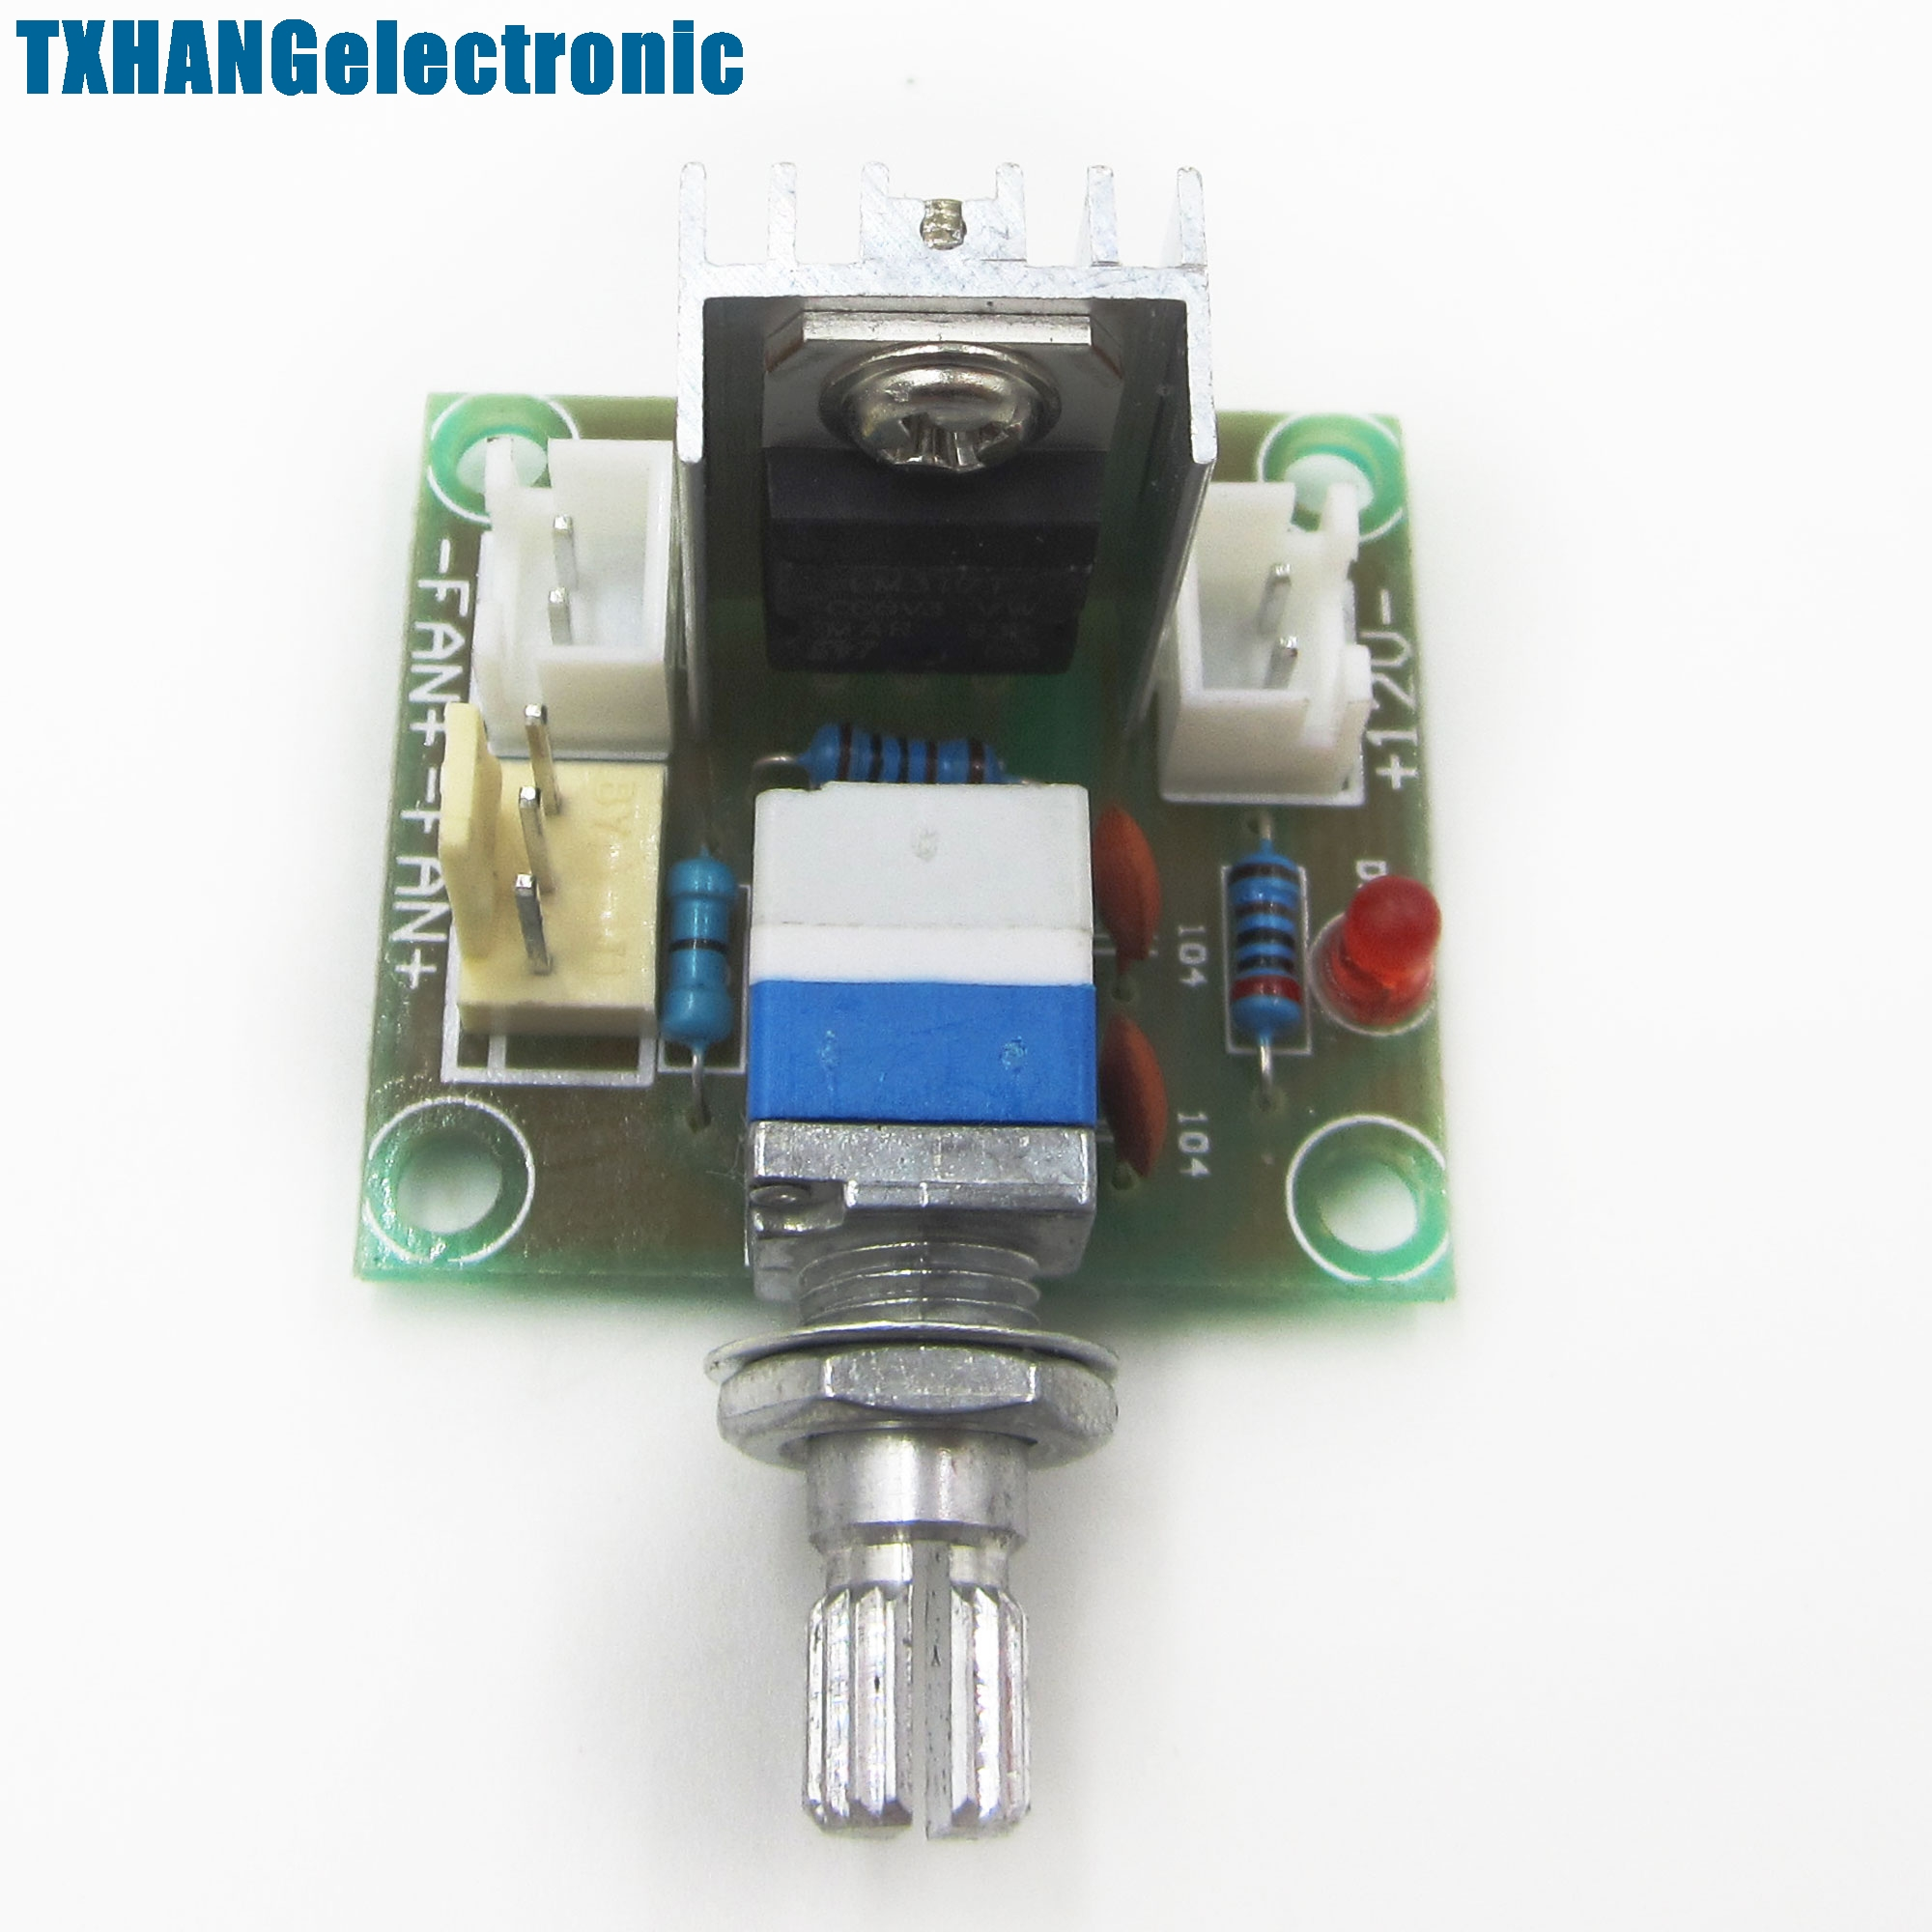 Lm317 Dc Linear Converter Down Voltage Regulator Board Speed Control 12 Volt Circuit Diagram Also Module Power In Integrated Circuits From Electronic Components Supplies On